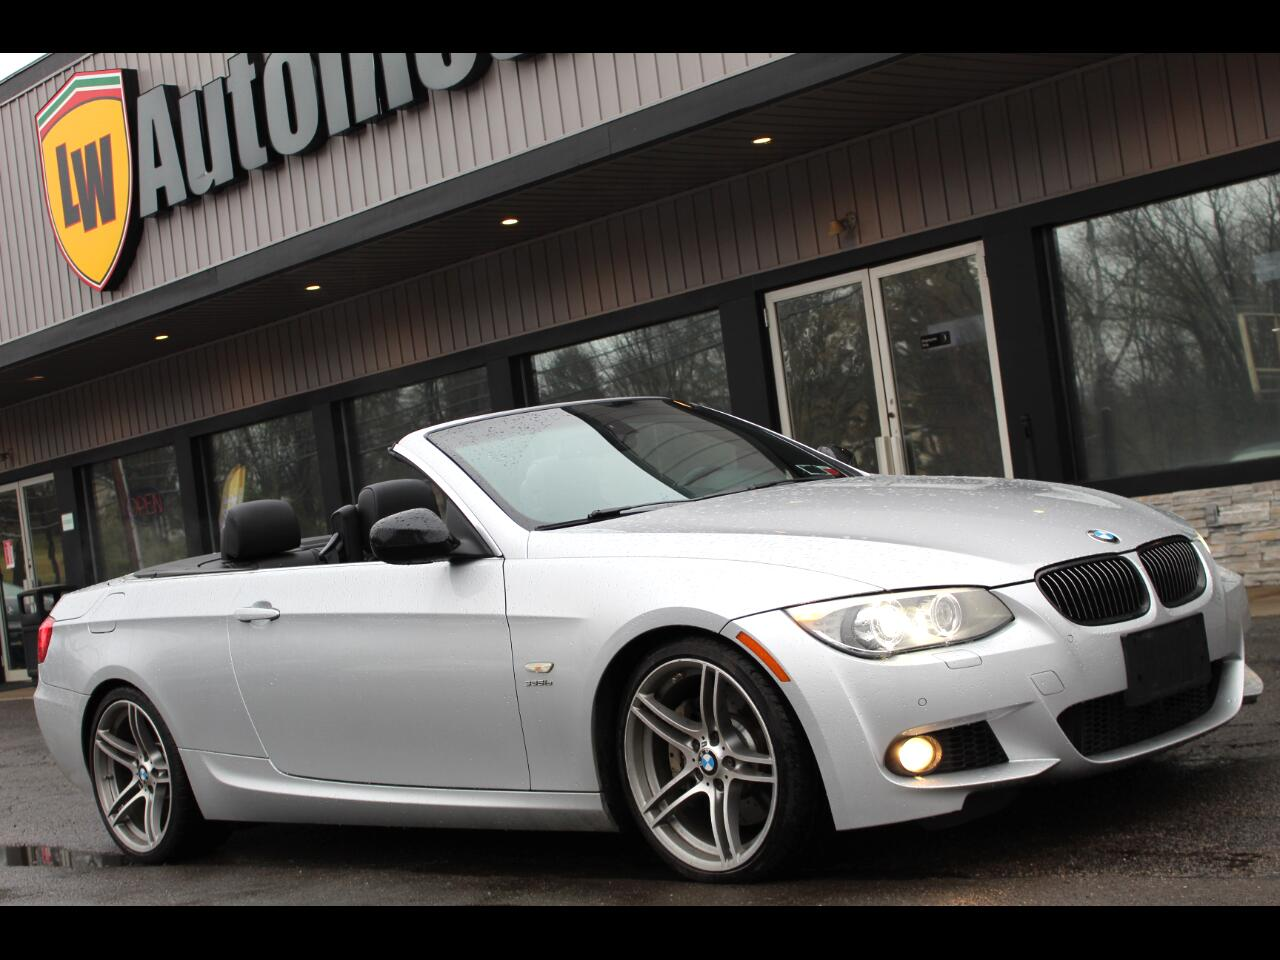 BMW 3 Series 2dr Conv 335is 2013